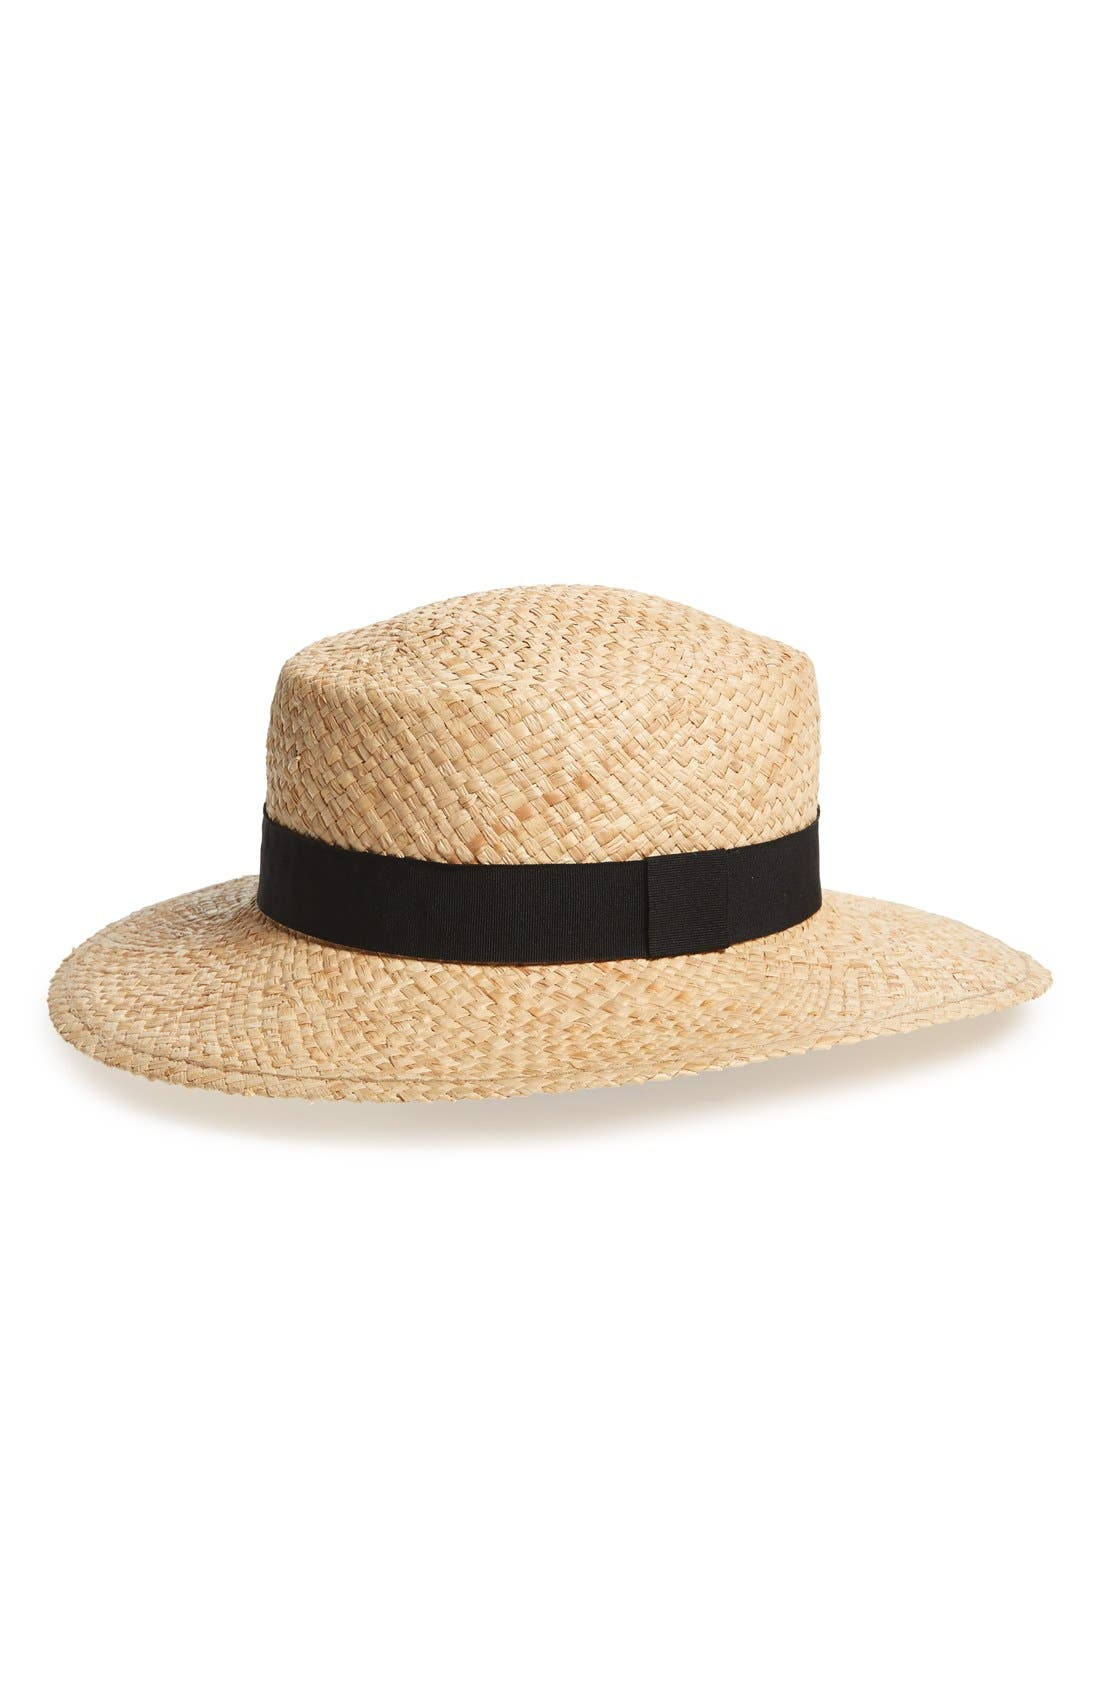 Alternate Image 1 Selected - BP. Woven Raffia Boater Hat